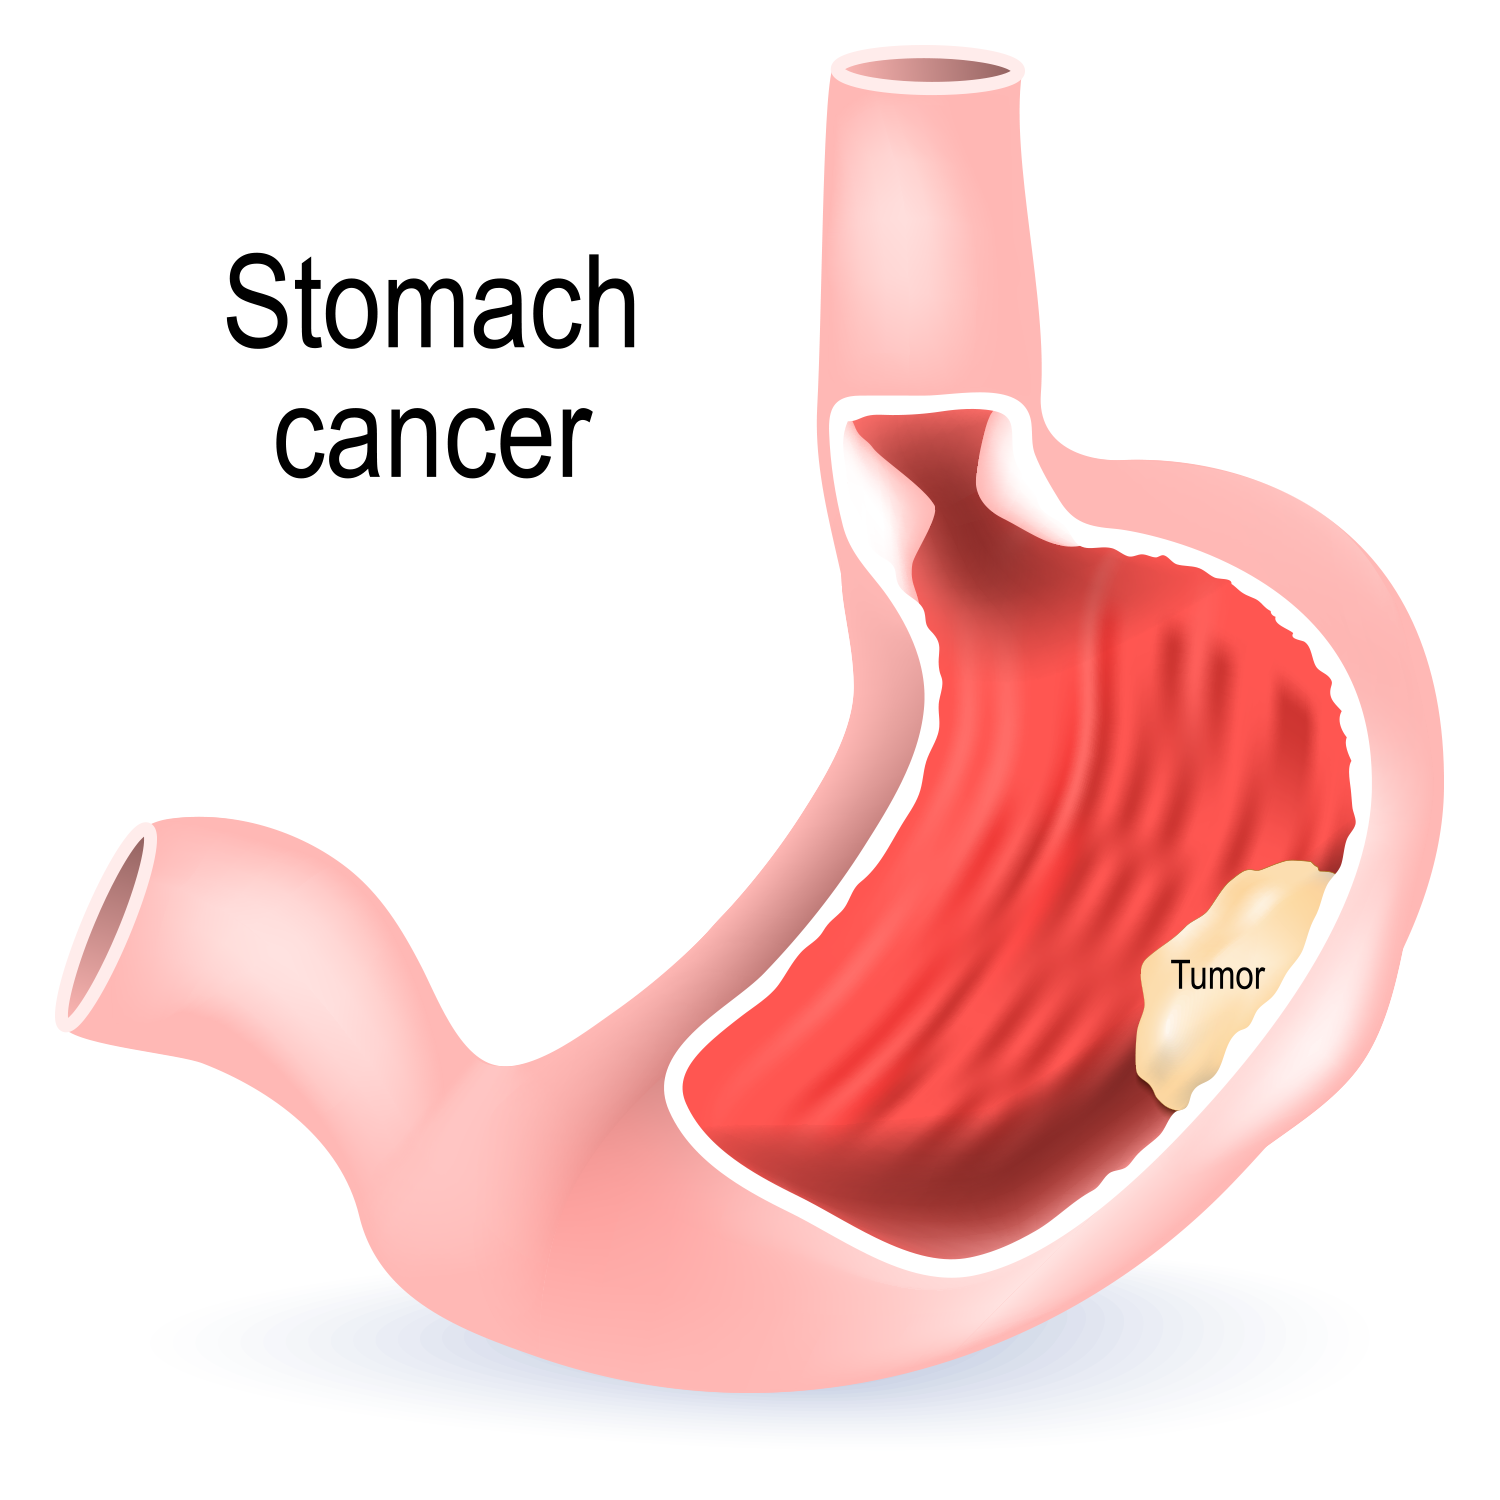 stomach cancer | illustration showing stomach with a tumor